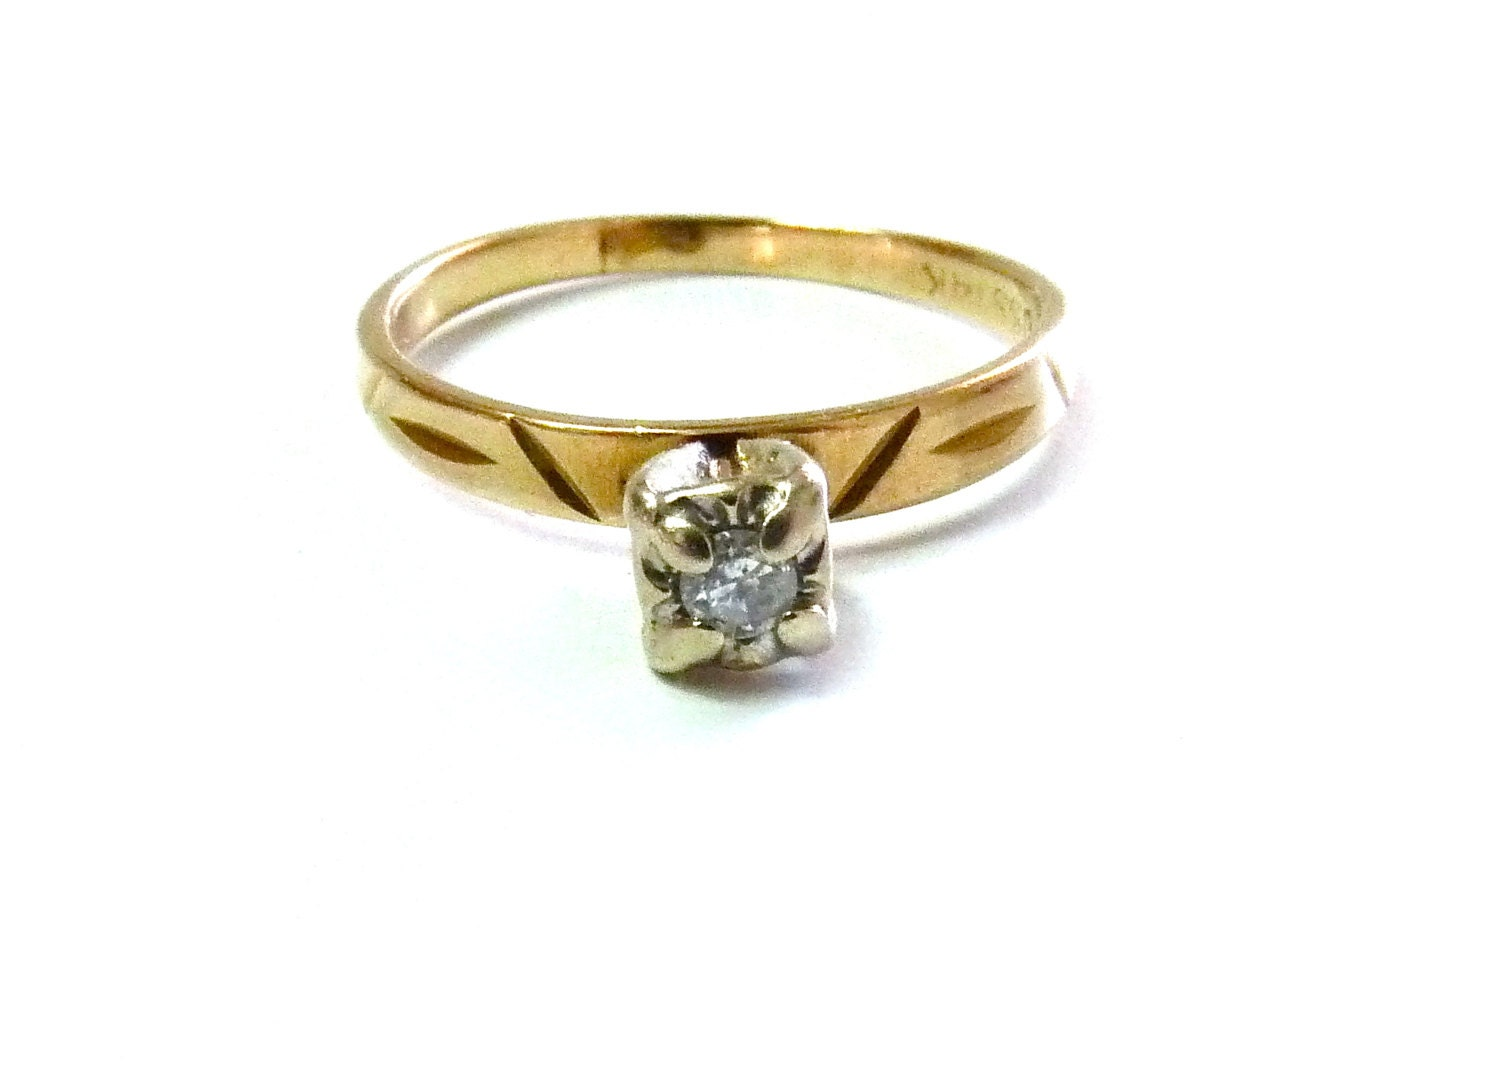 Vintage 14K Gold Solitaire Diamond Engagement Ring Wedding